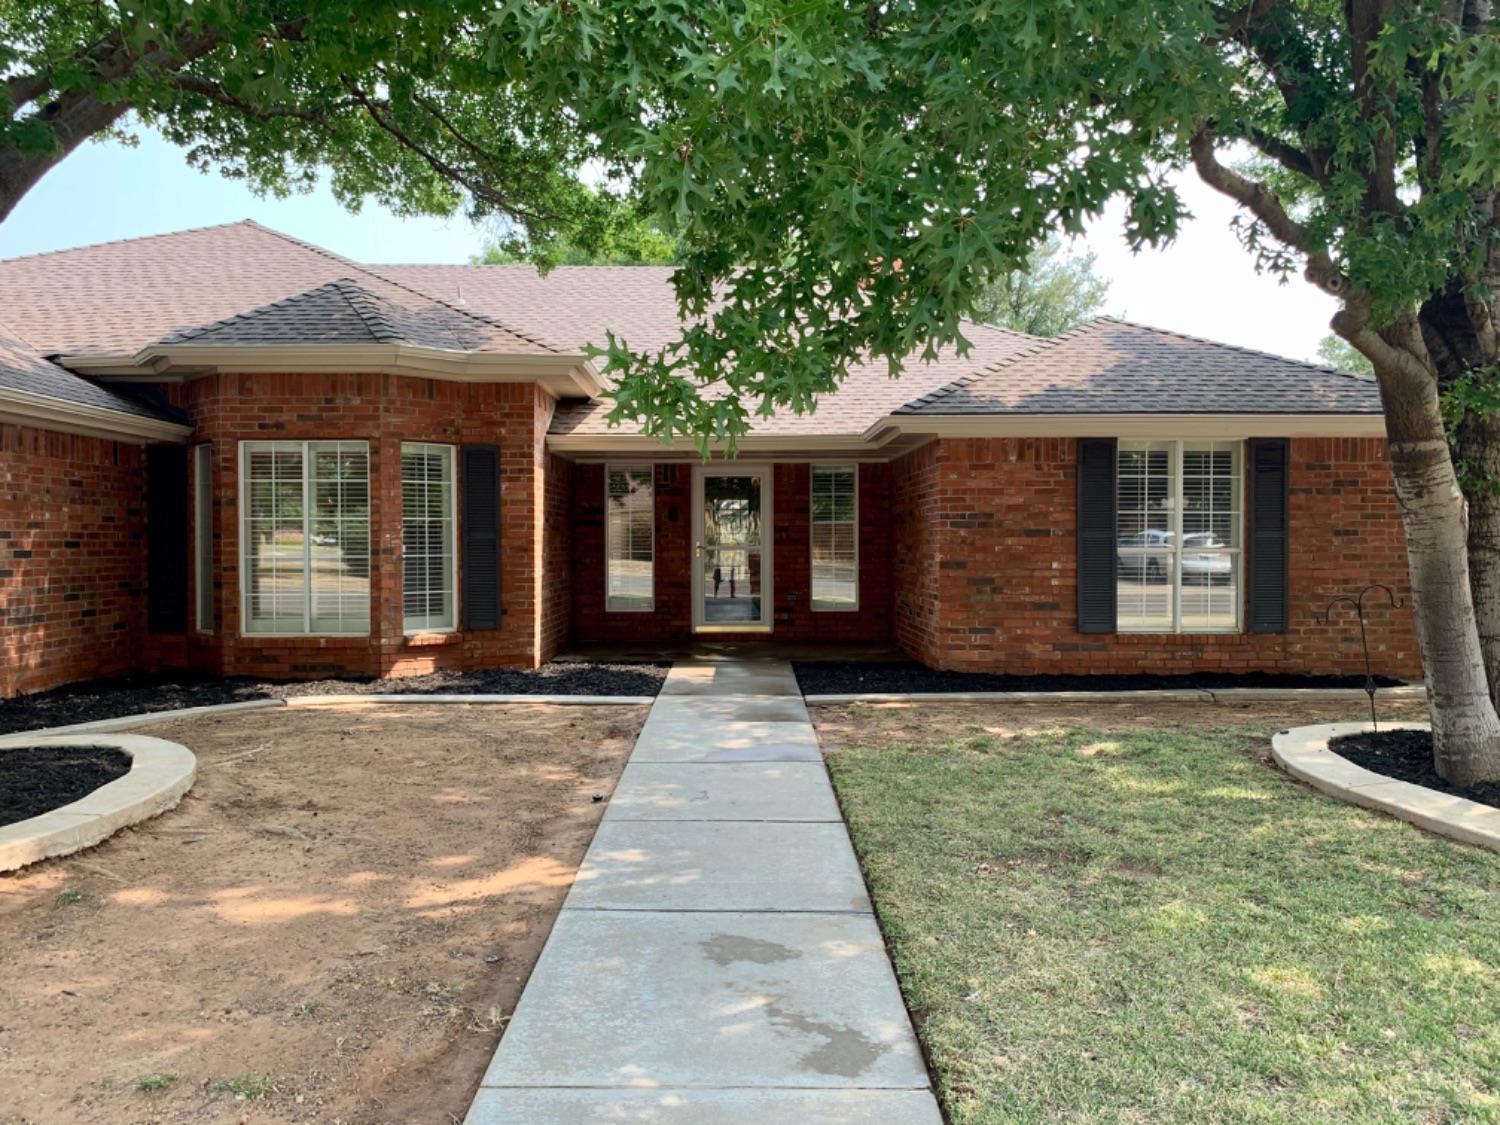 One owner of this 3-2.5-2 with basement, formal dining, and heated and cooled sunroom.  Plenty of storage, oversized garage, double ovens, plantation shutters, built-ins and many extras! Fresh paint, no wall paper, and new flooring!  Recent roof!  Be sure to see the RV parking on the southside of the home behind the fenced area. Built by Robert Woods!